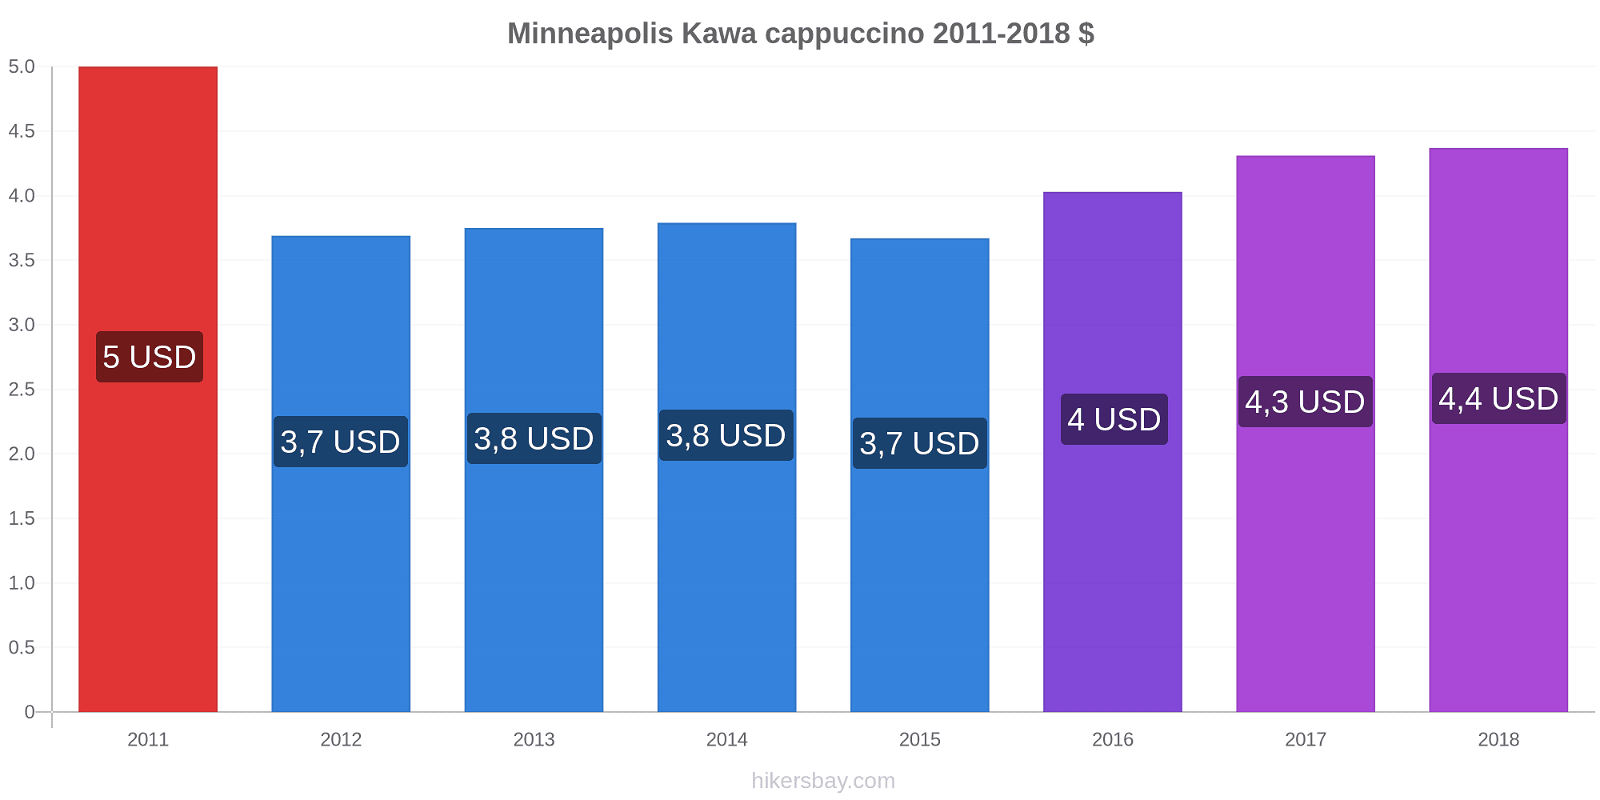 Minneapolis zmiany cen Kawa cappuccino hikersbay.com